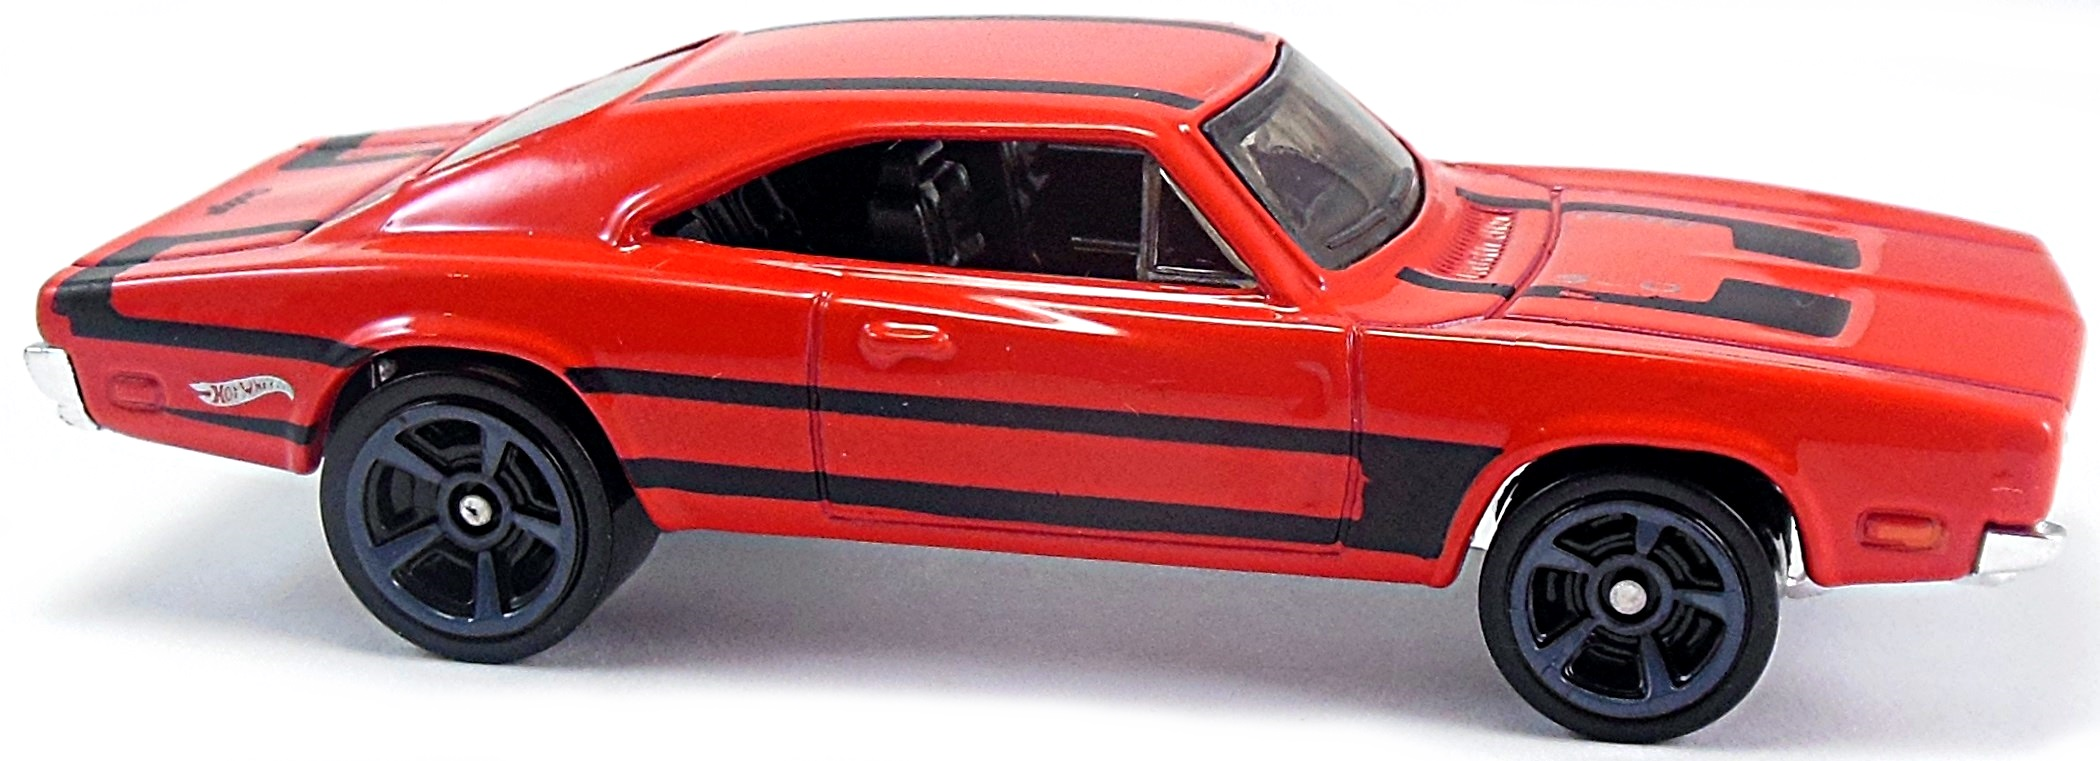 69 Dodge Charger 500 80mm 2015 Hot Wheels Newsletter